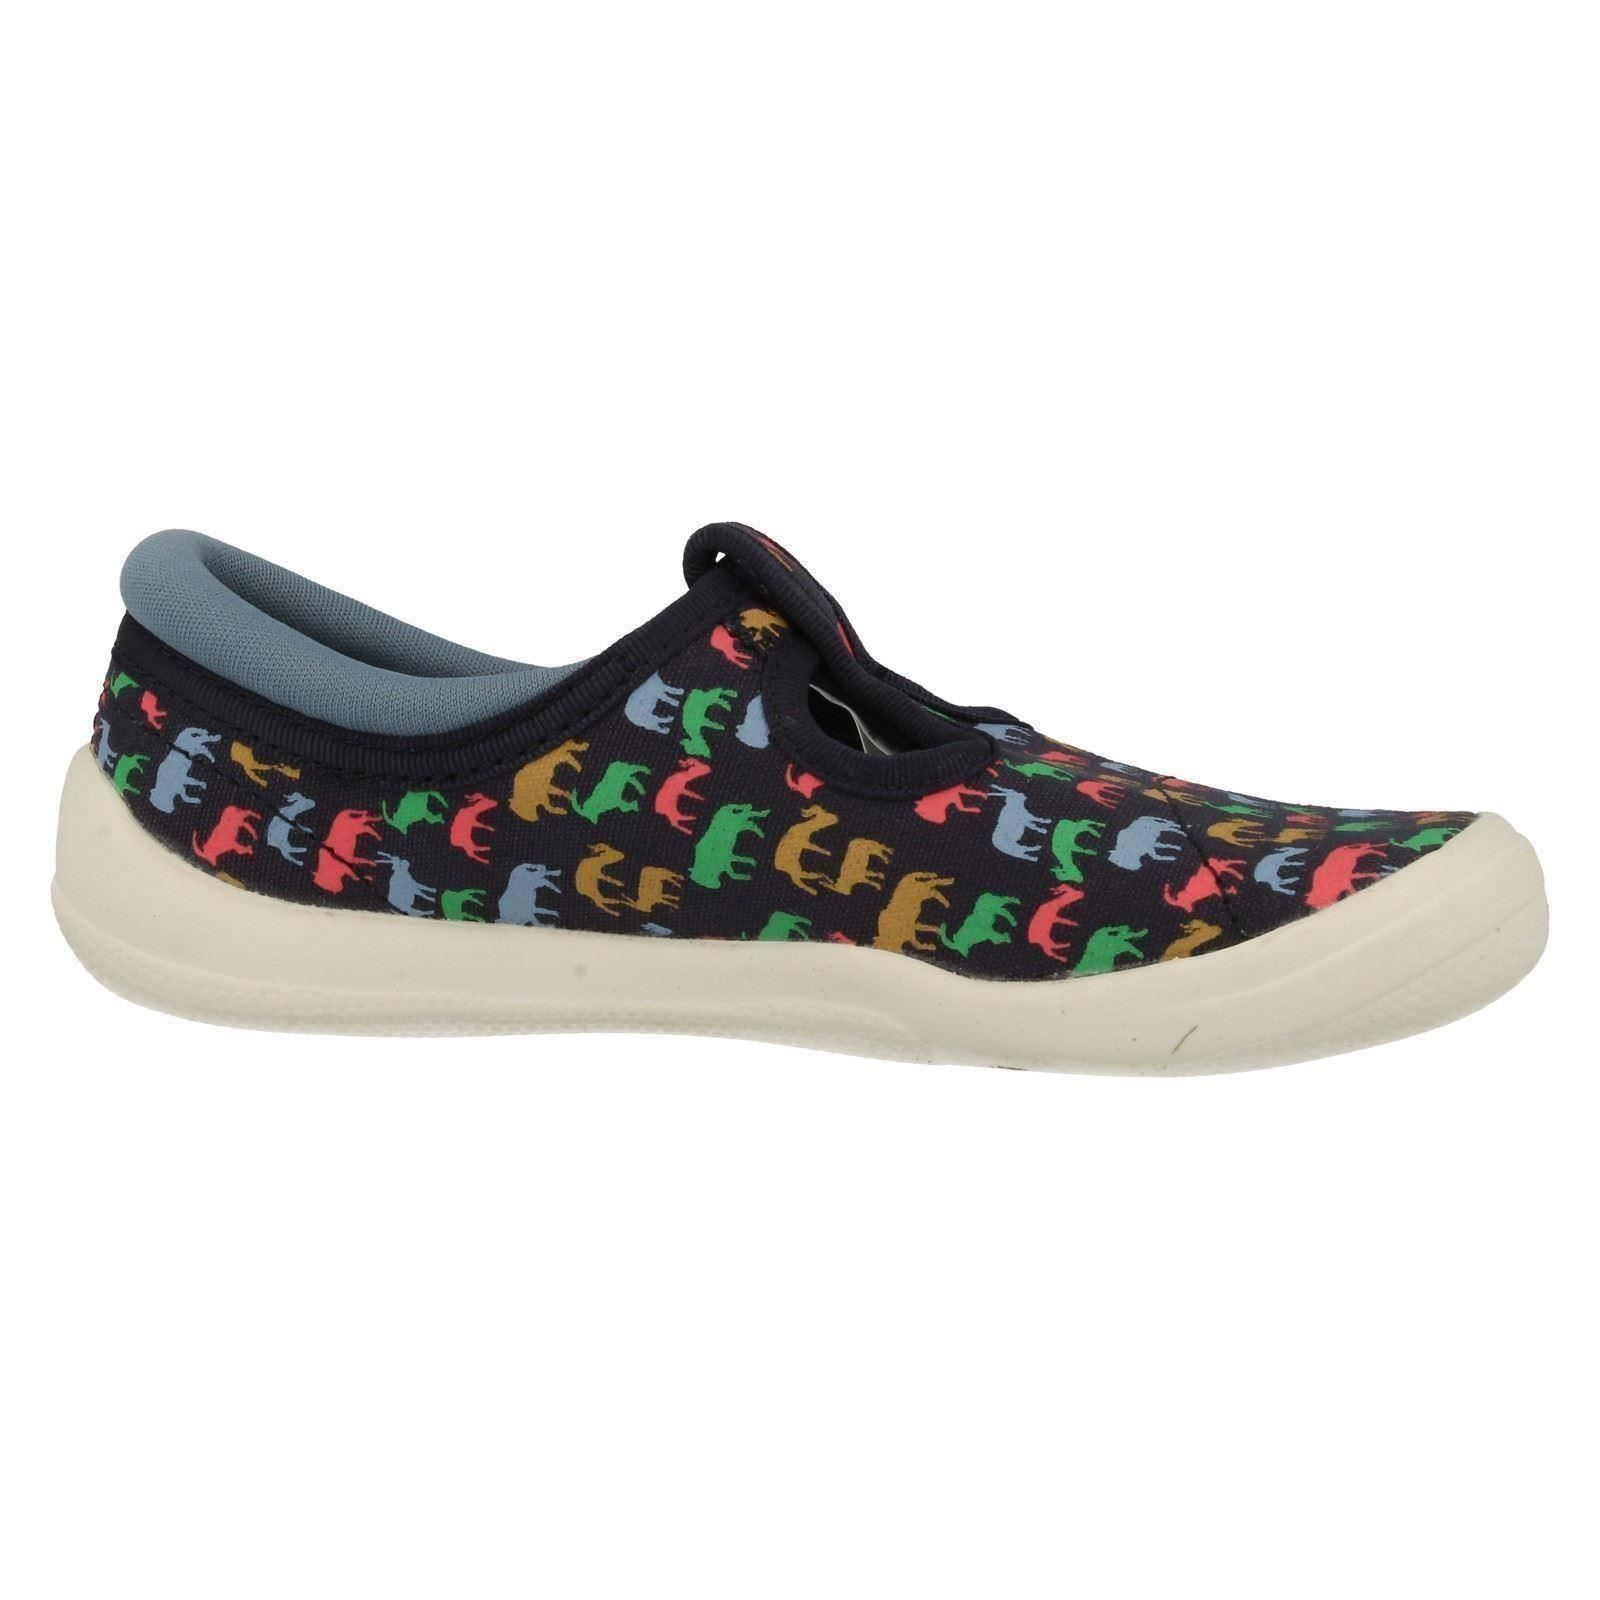 boys clarks doodles canvas shoes with animal print